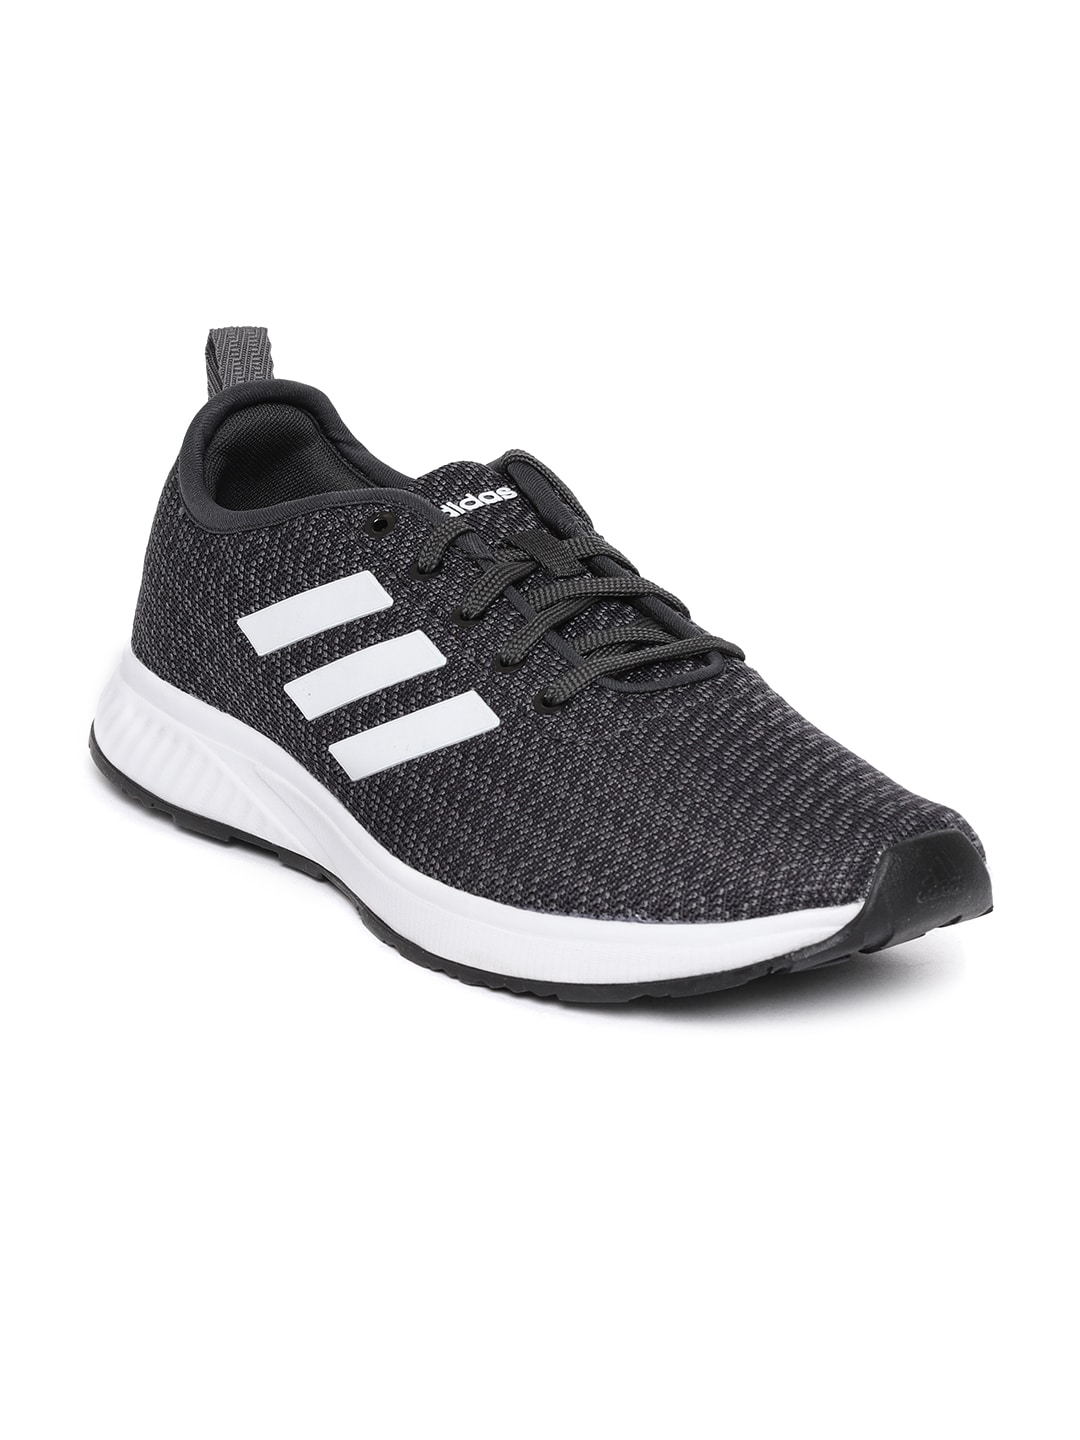 19fd9597a551f Adidas White Shoes - Buy Adidas White Shoes Online in India